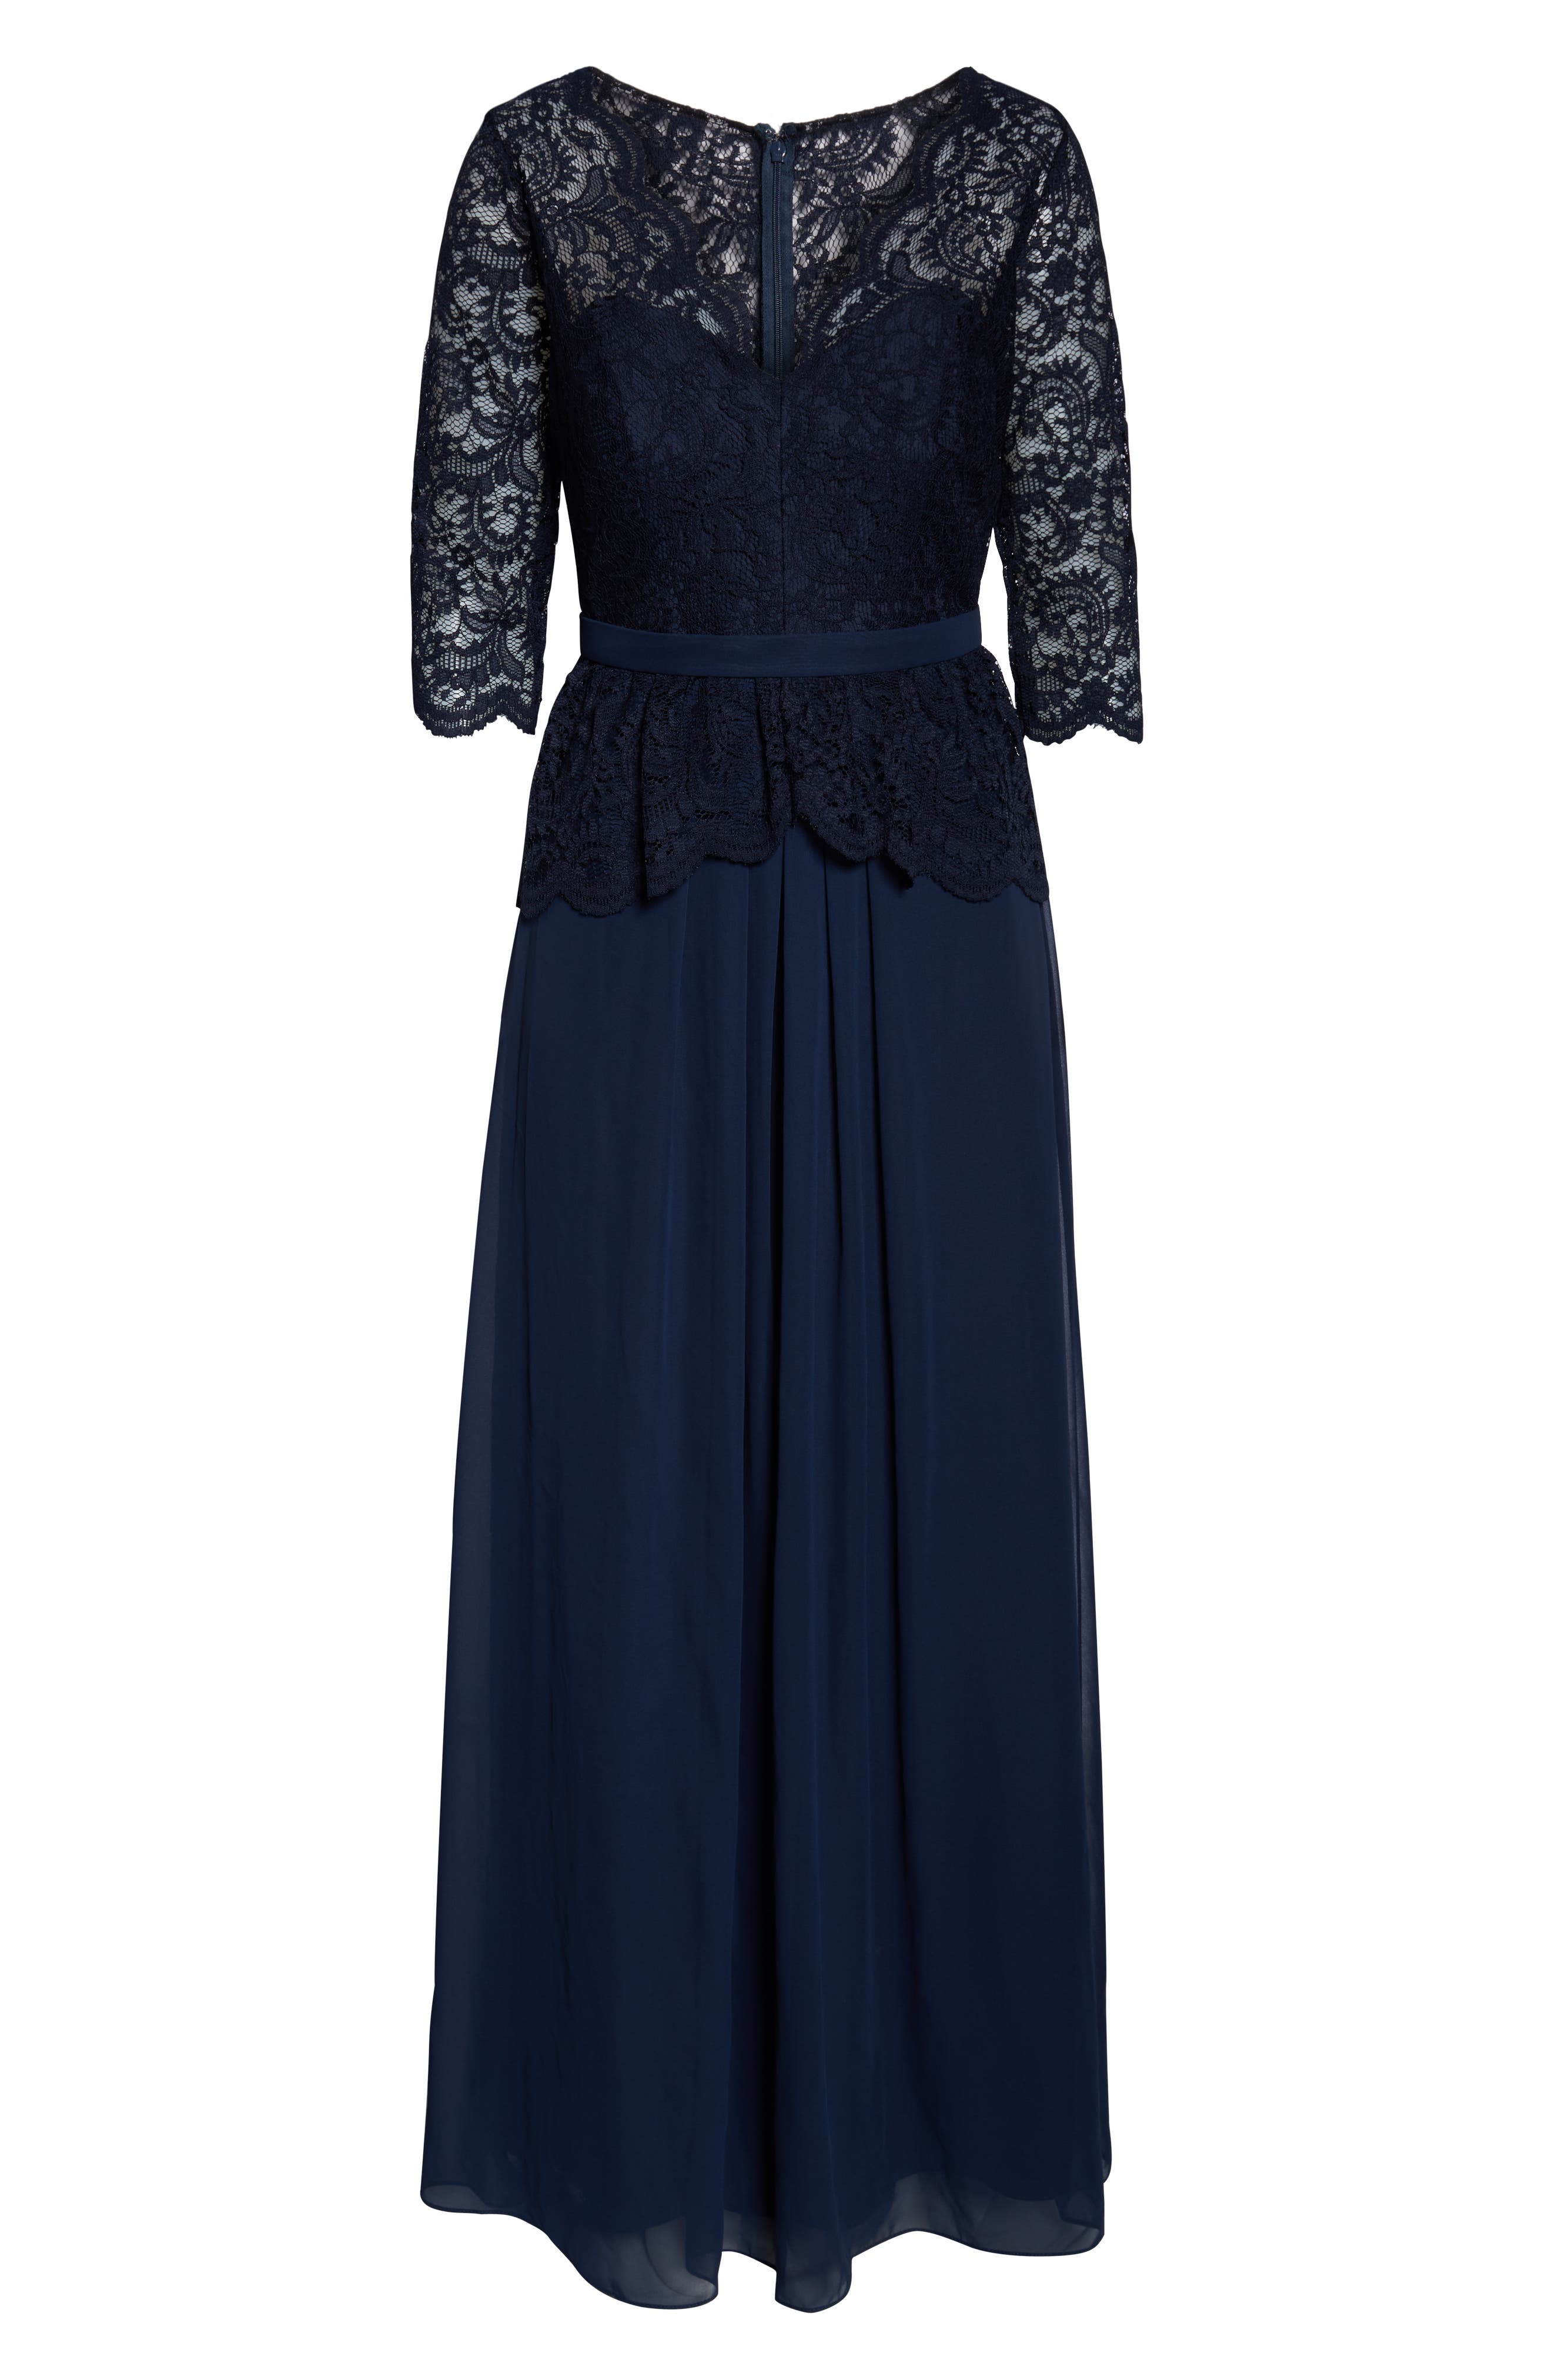 JENNY PACKHAM, Lux Chiffon Gown, Alternate thumbnail 3, color, MIDNIGHT